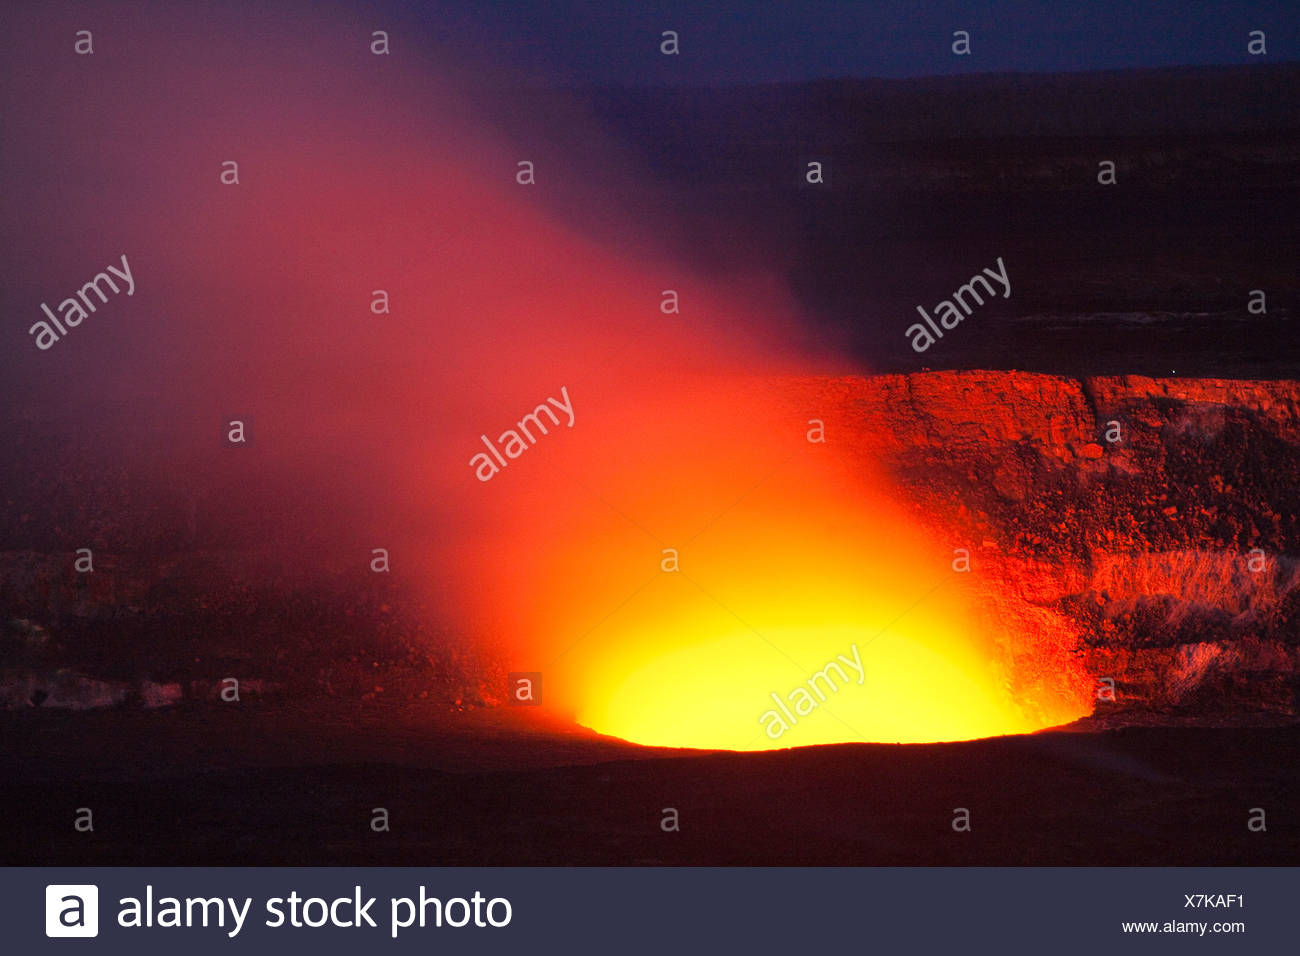 Magma in the Halema'uma'u Crater in the Kilauea Caldera illuminating the rising sulfur dioxide plume against the evening sky - Stock Image